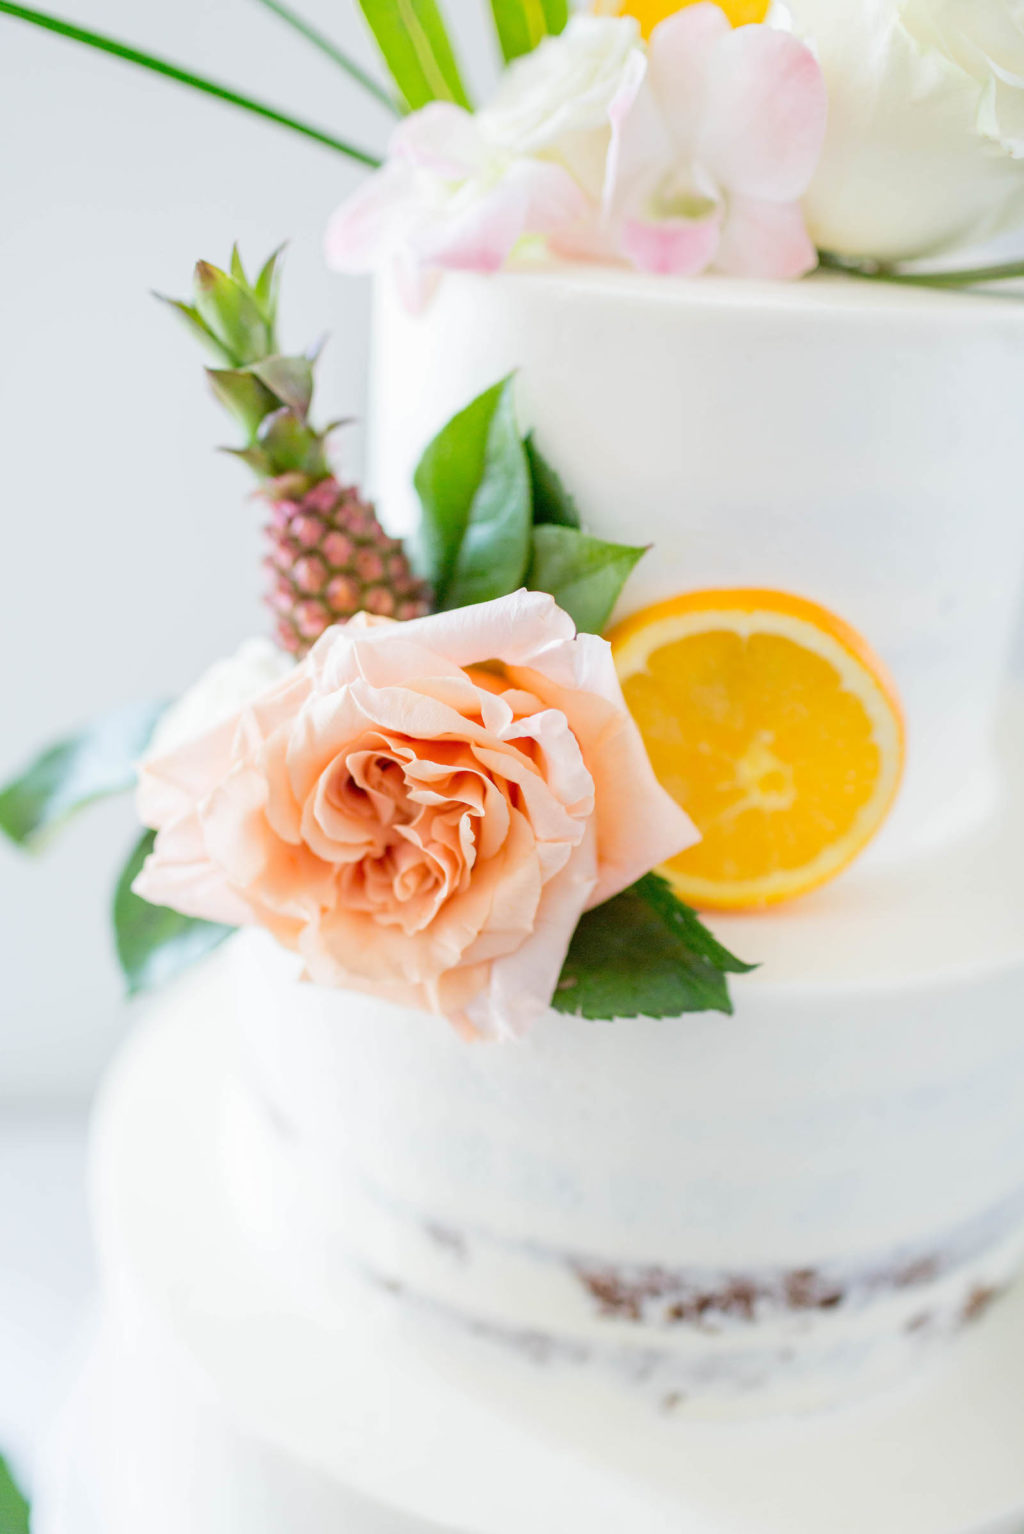 Tropical Beach Wedding Cake | Three Tier Semi Naked Half Iced Buttercream Wedding Cake with Tropical Greenery Monstera Leaf, Orange Slices and Mini Ornamental Pineapple, Blush Pink Roses and Protea by The Artistic Whisk